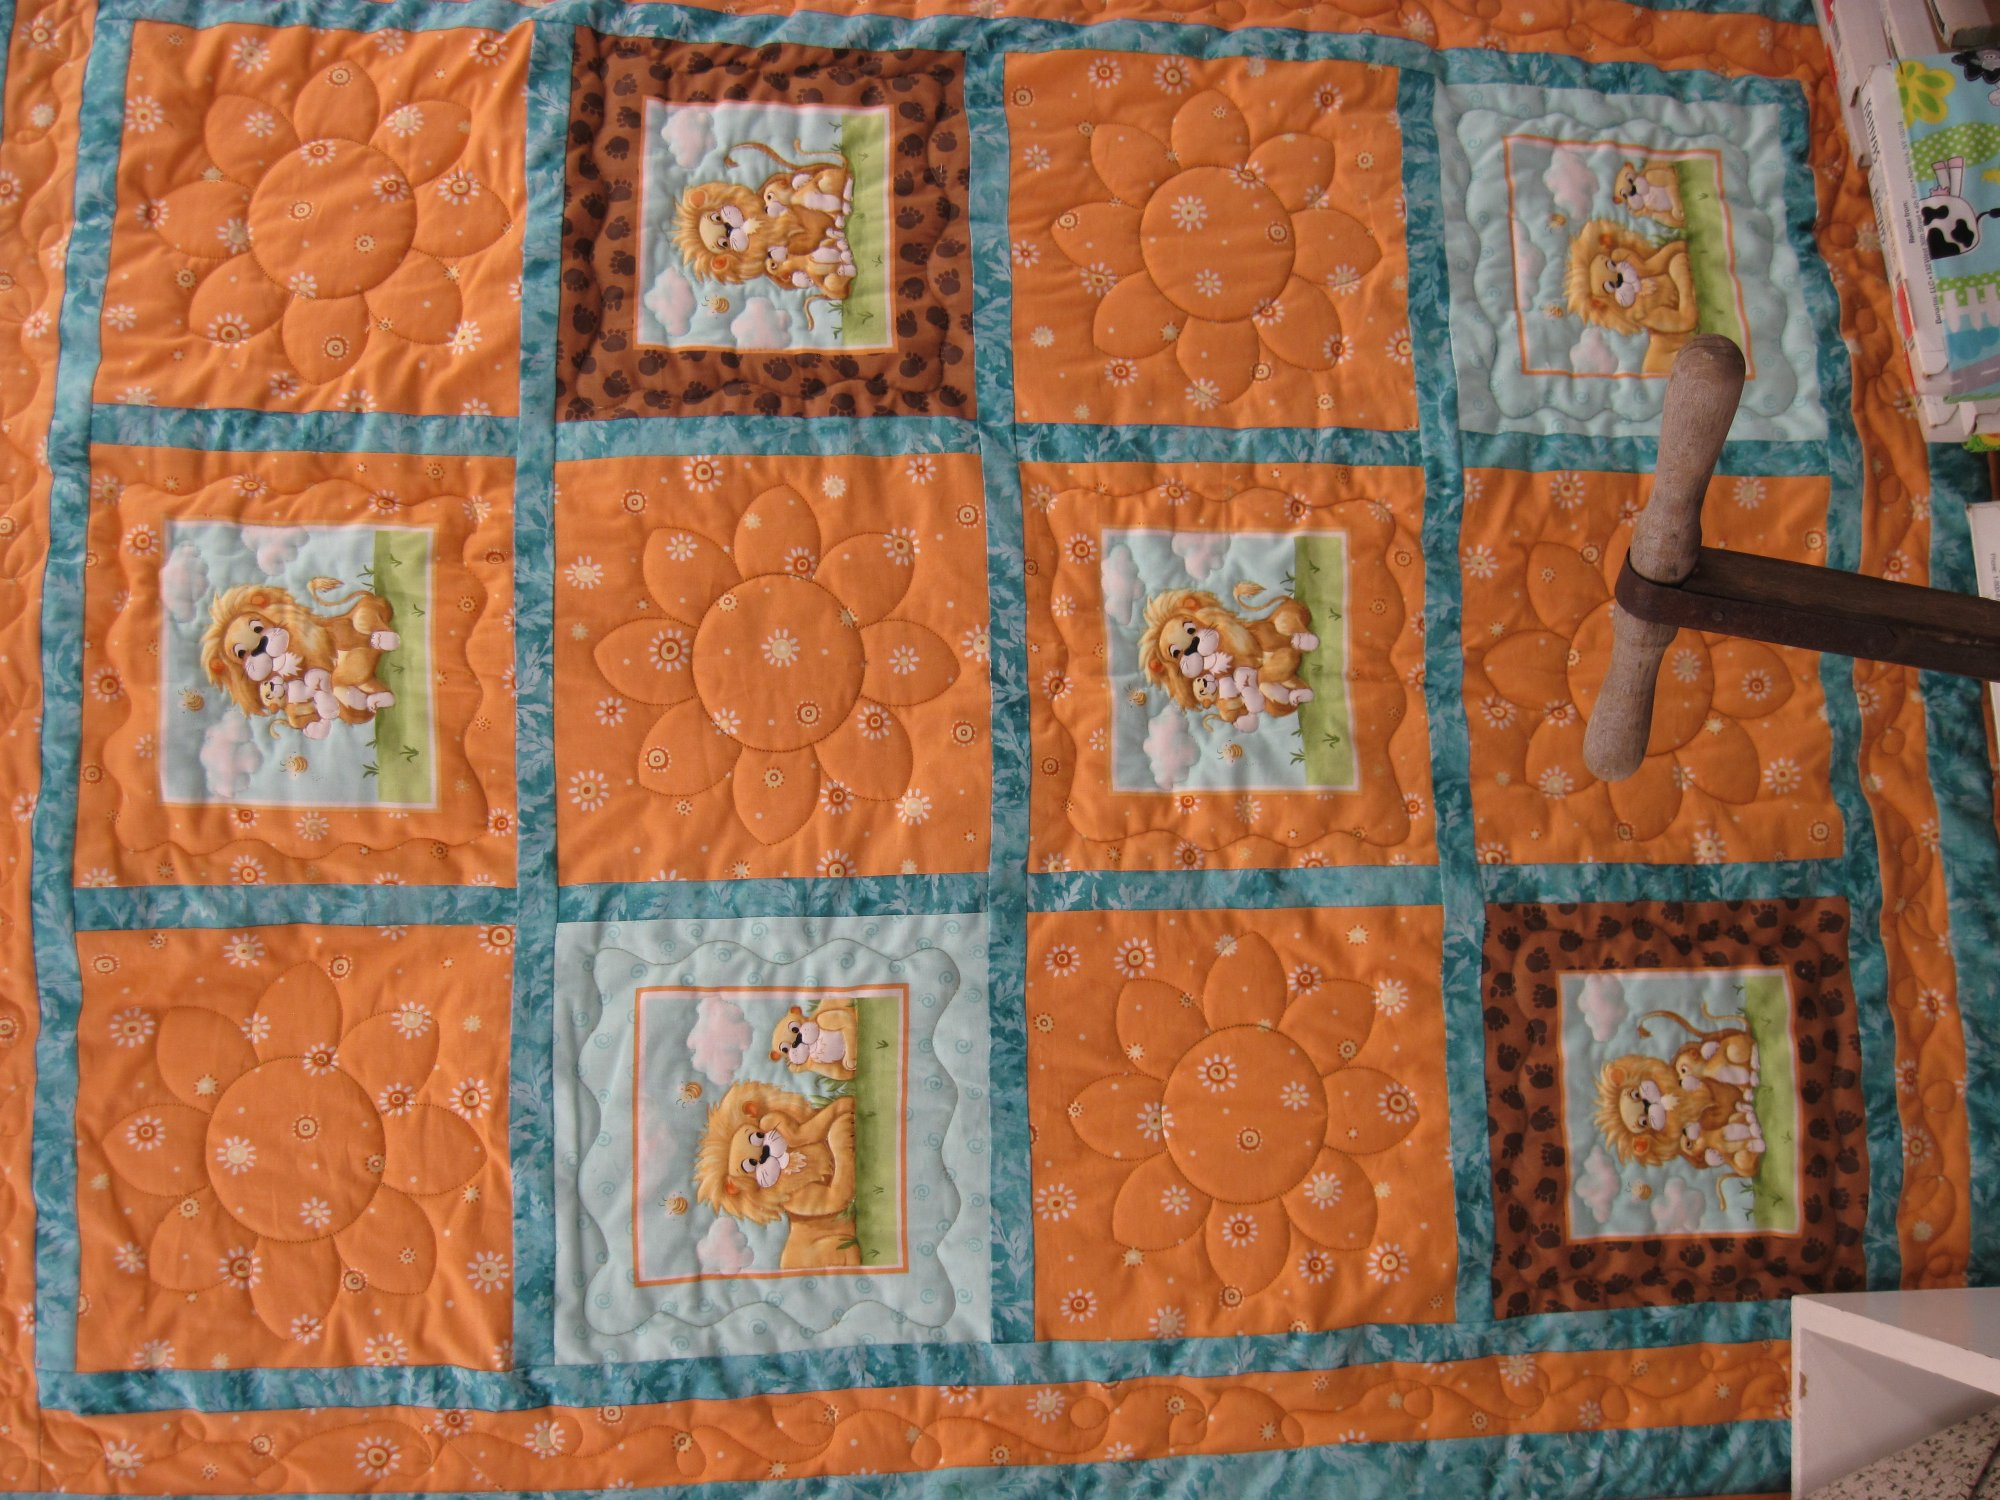 Lyon the Lion 3yd. Quilt 5 Tan